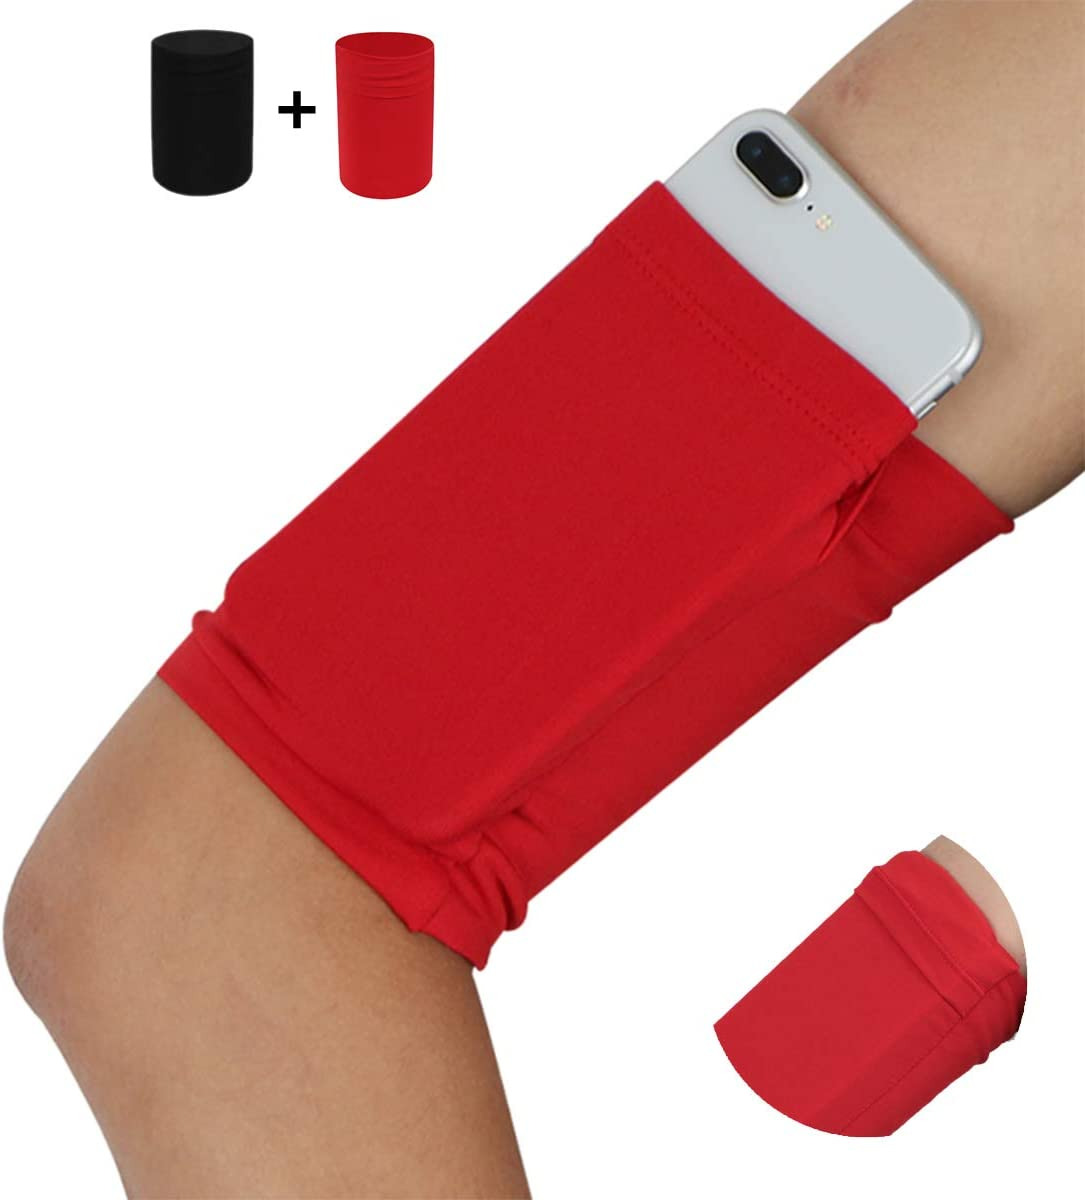 Small Cell Phone Armband for Exercise Fitness Training Skating Workouts Working Out Running Walking Yoga Jogging Cellphone Armband Sleeve Pouch Pocket for iPhone 6 6S 7 8 X XR XS 11 12 - Red+Black